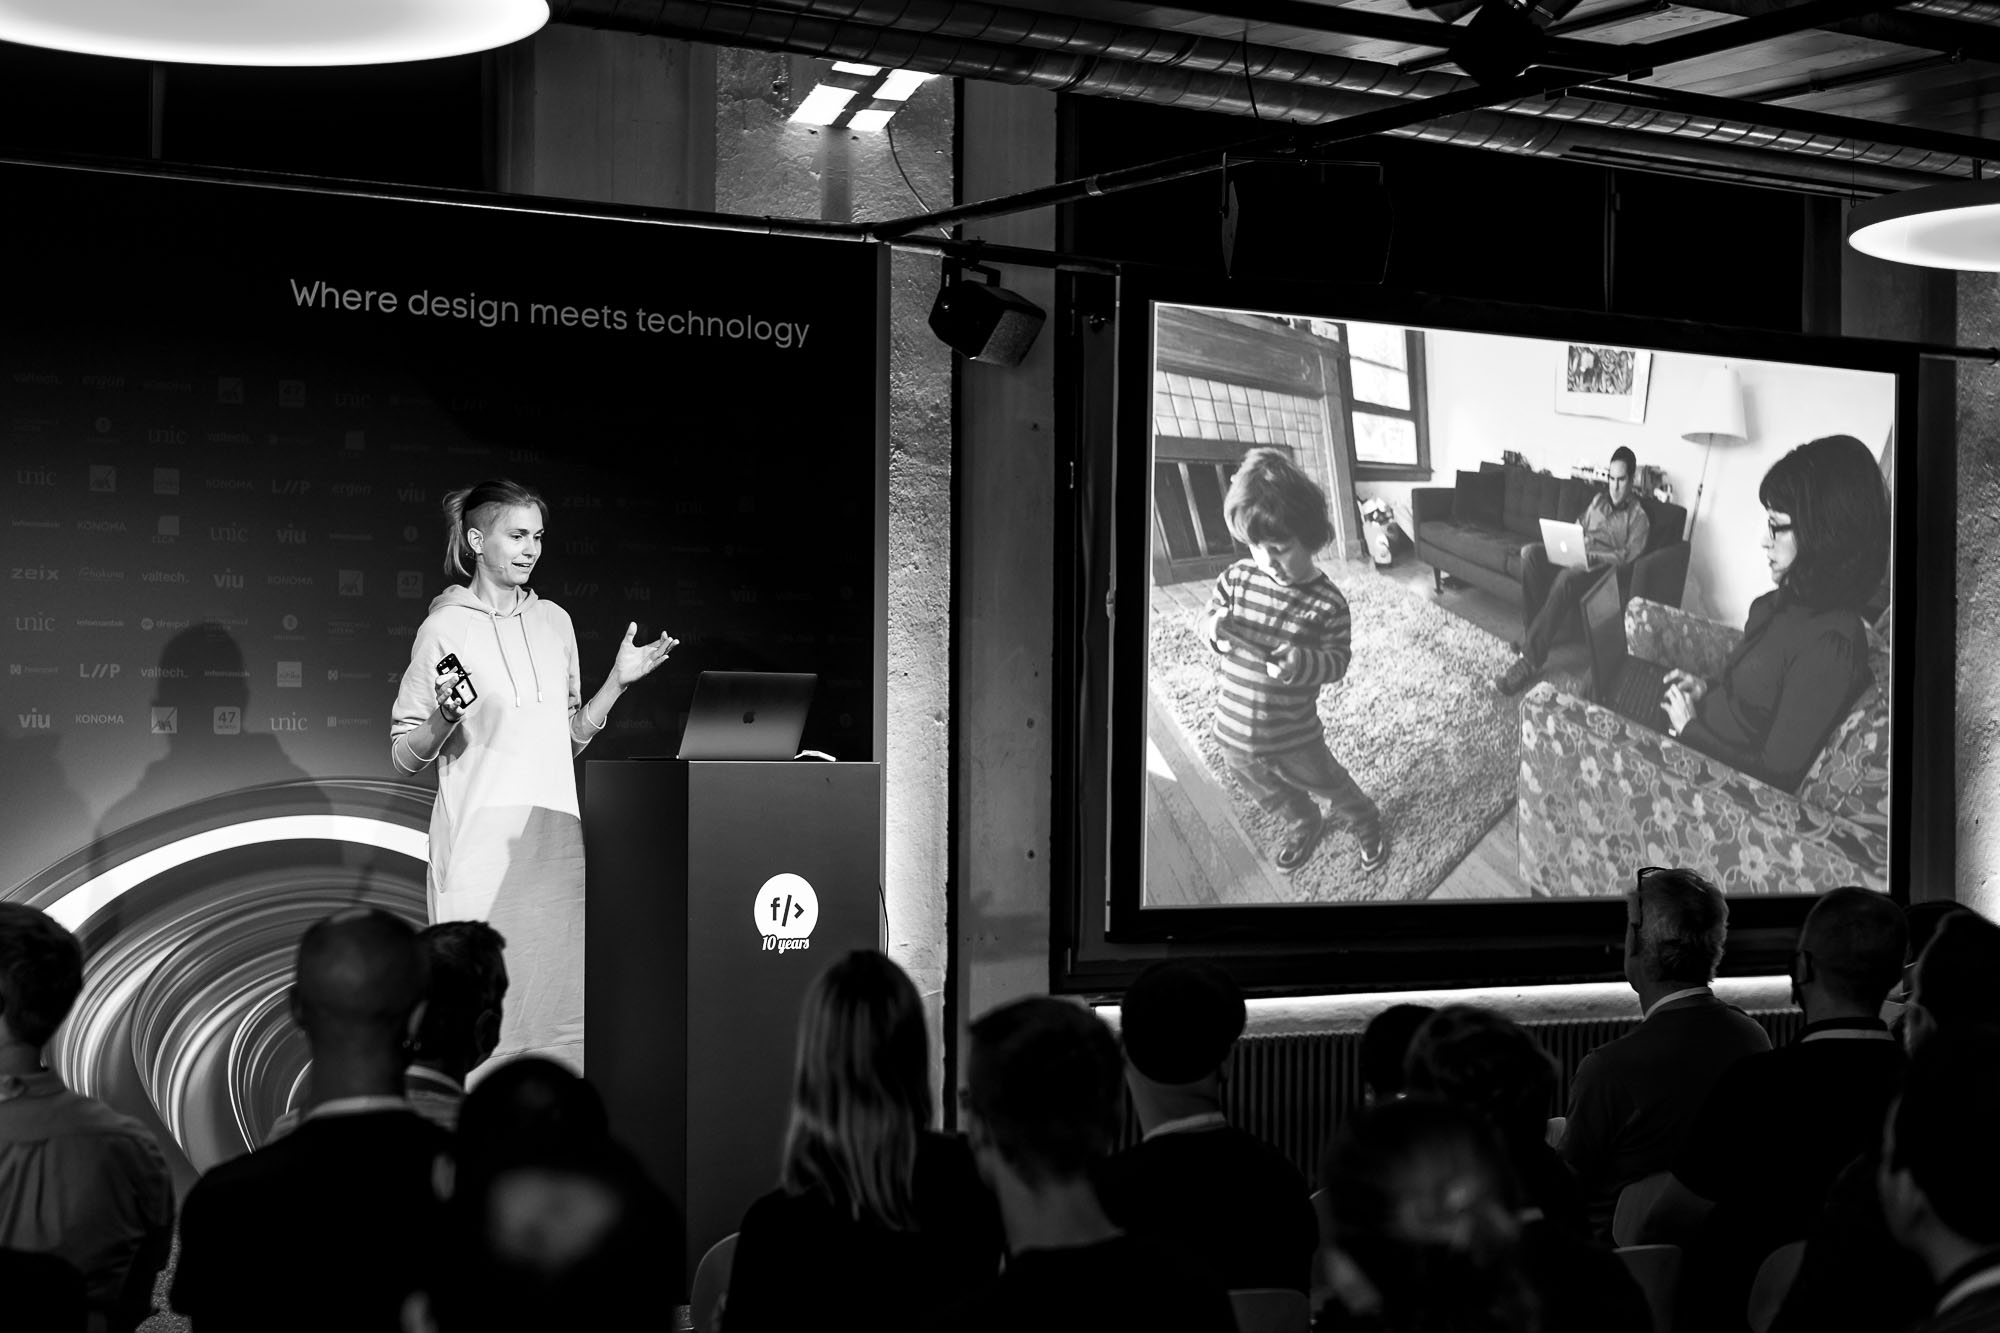 Astrid Weber on stage at Front Conference 2021